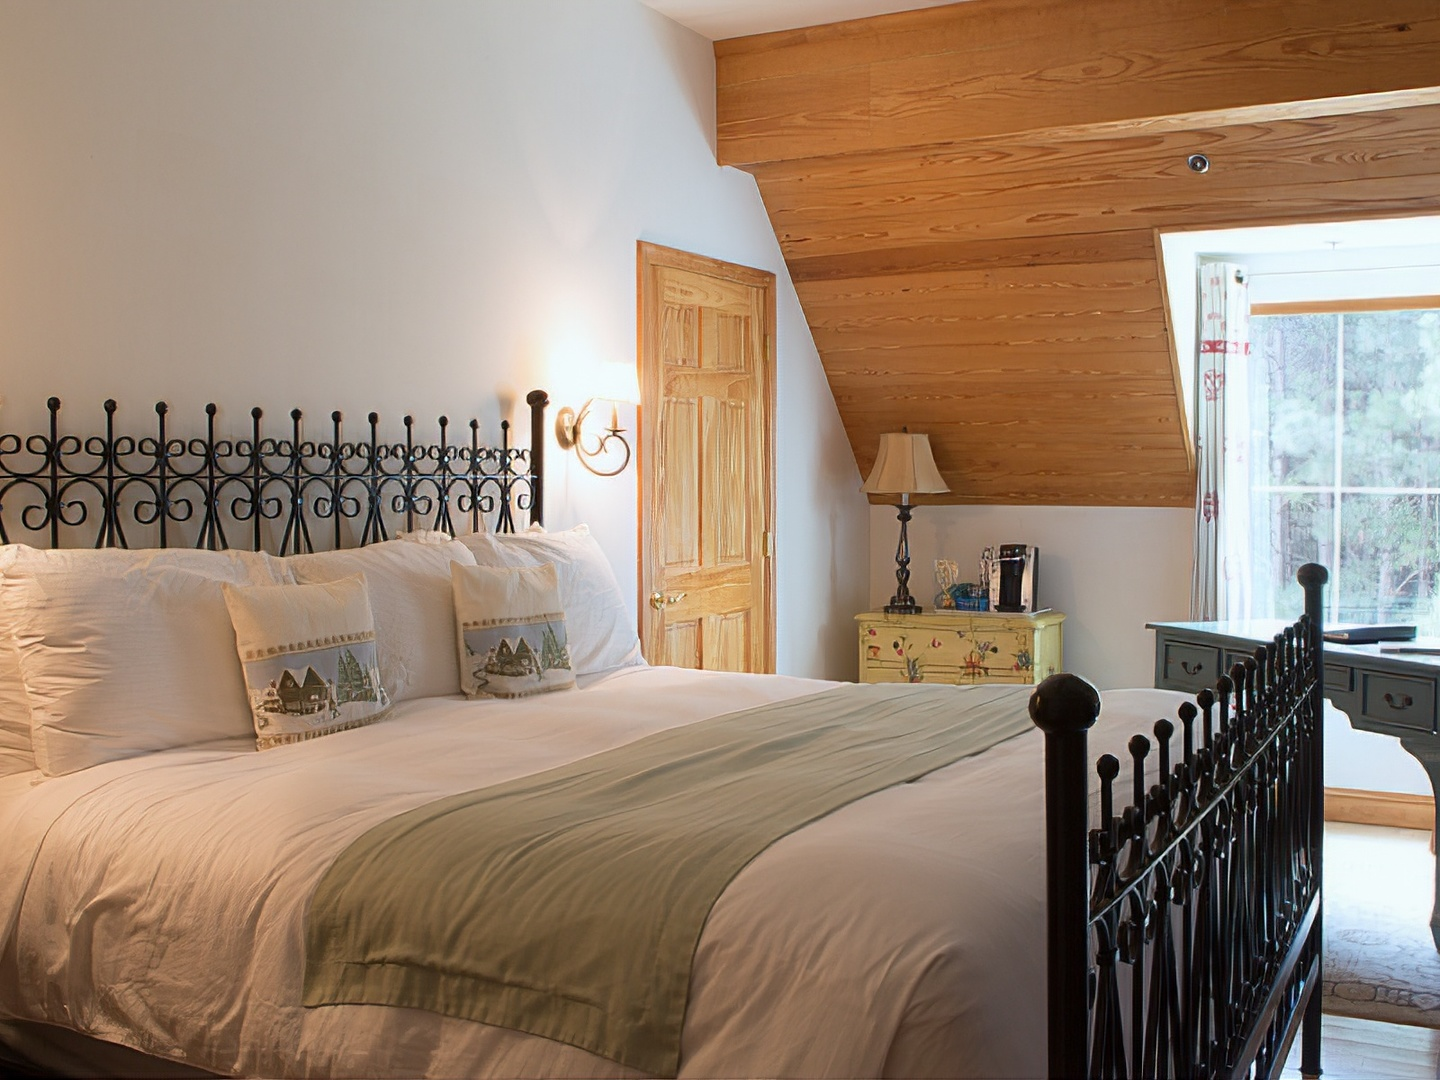 A bedroom with a large bed in a room at Wedmore Place.